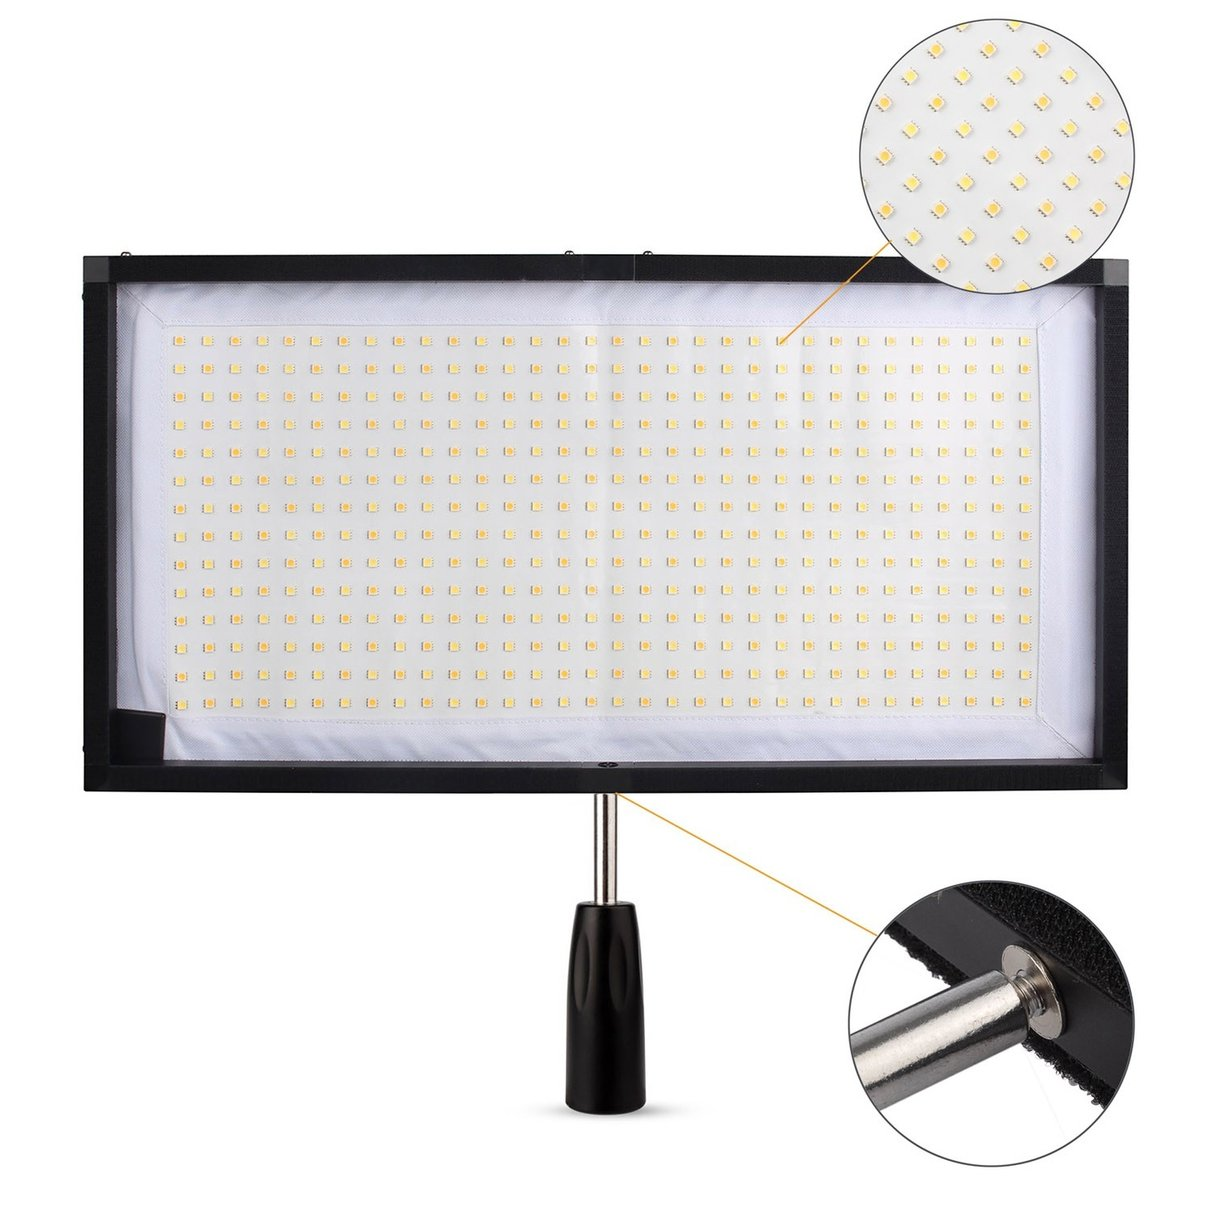 US $229 0 |Travor FL 3060 Flex Mat 5500K 480 LED Flexible Moldable LED  Video Light for Camera Video + 2 4G Remote-in Photo Studio Accessories from